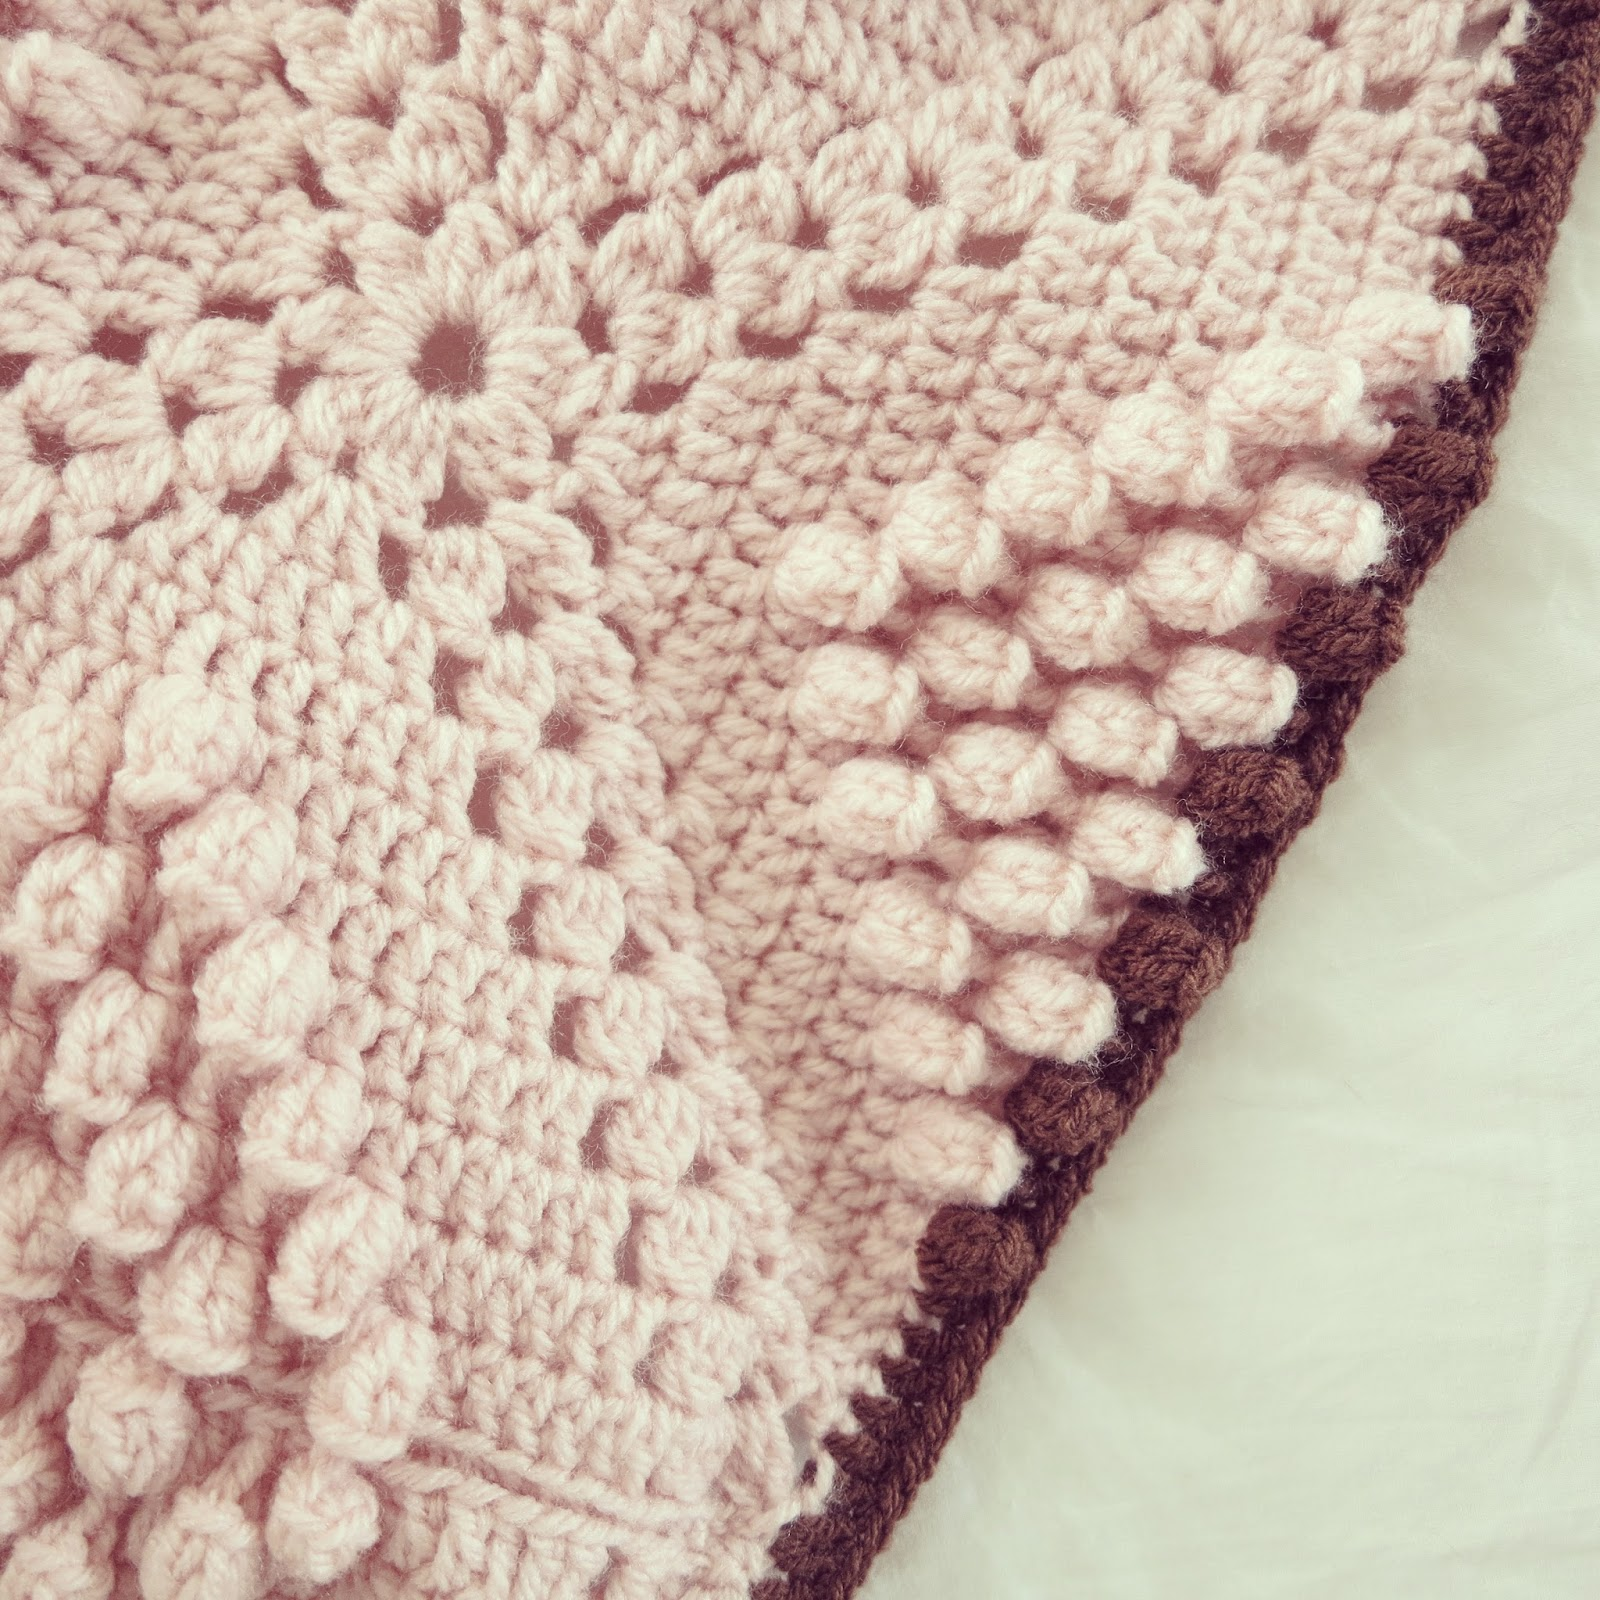 Crochet Popcorn Stitch : ByHaafner, crochet, popcorn, bobble stitch throw, blanket, powder pink ...